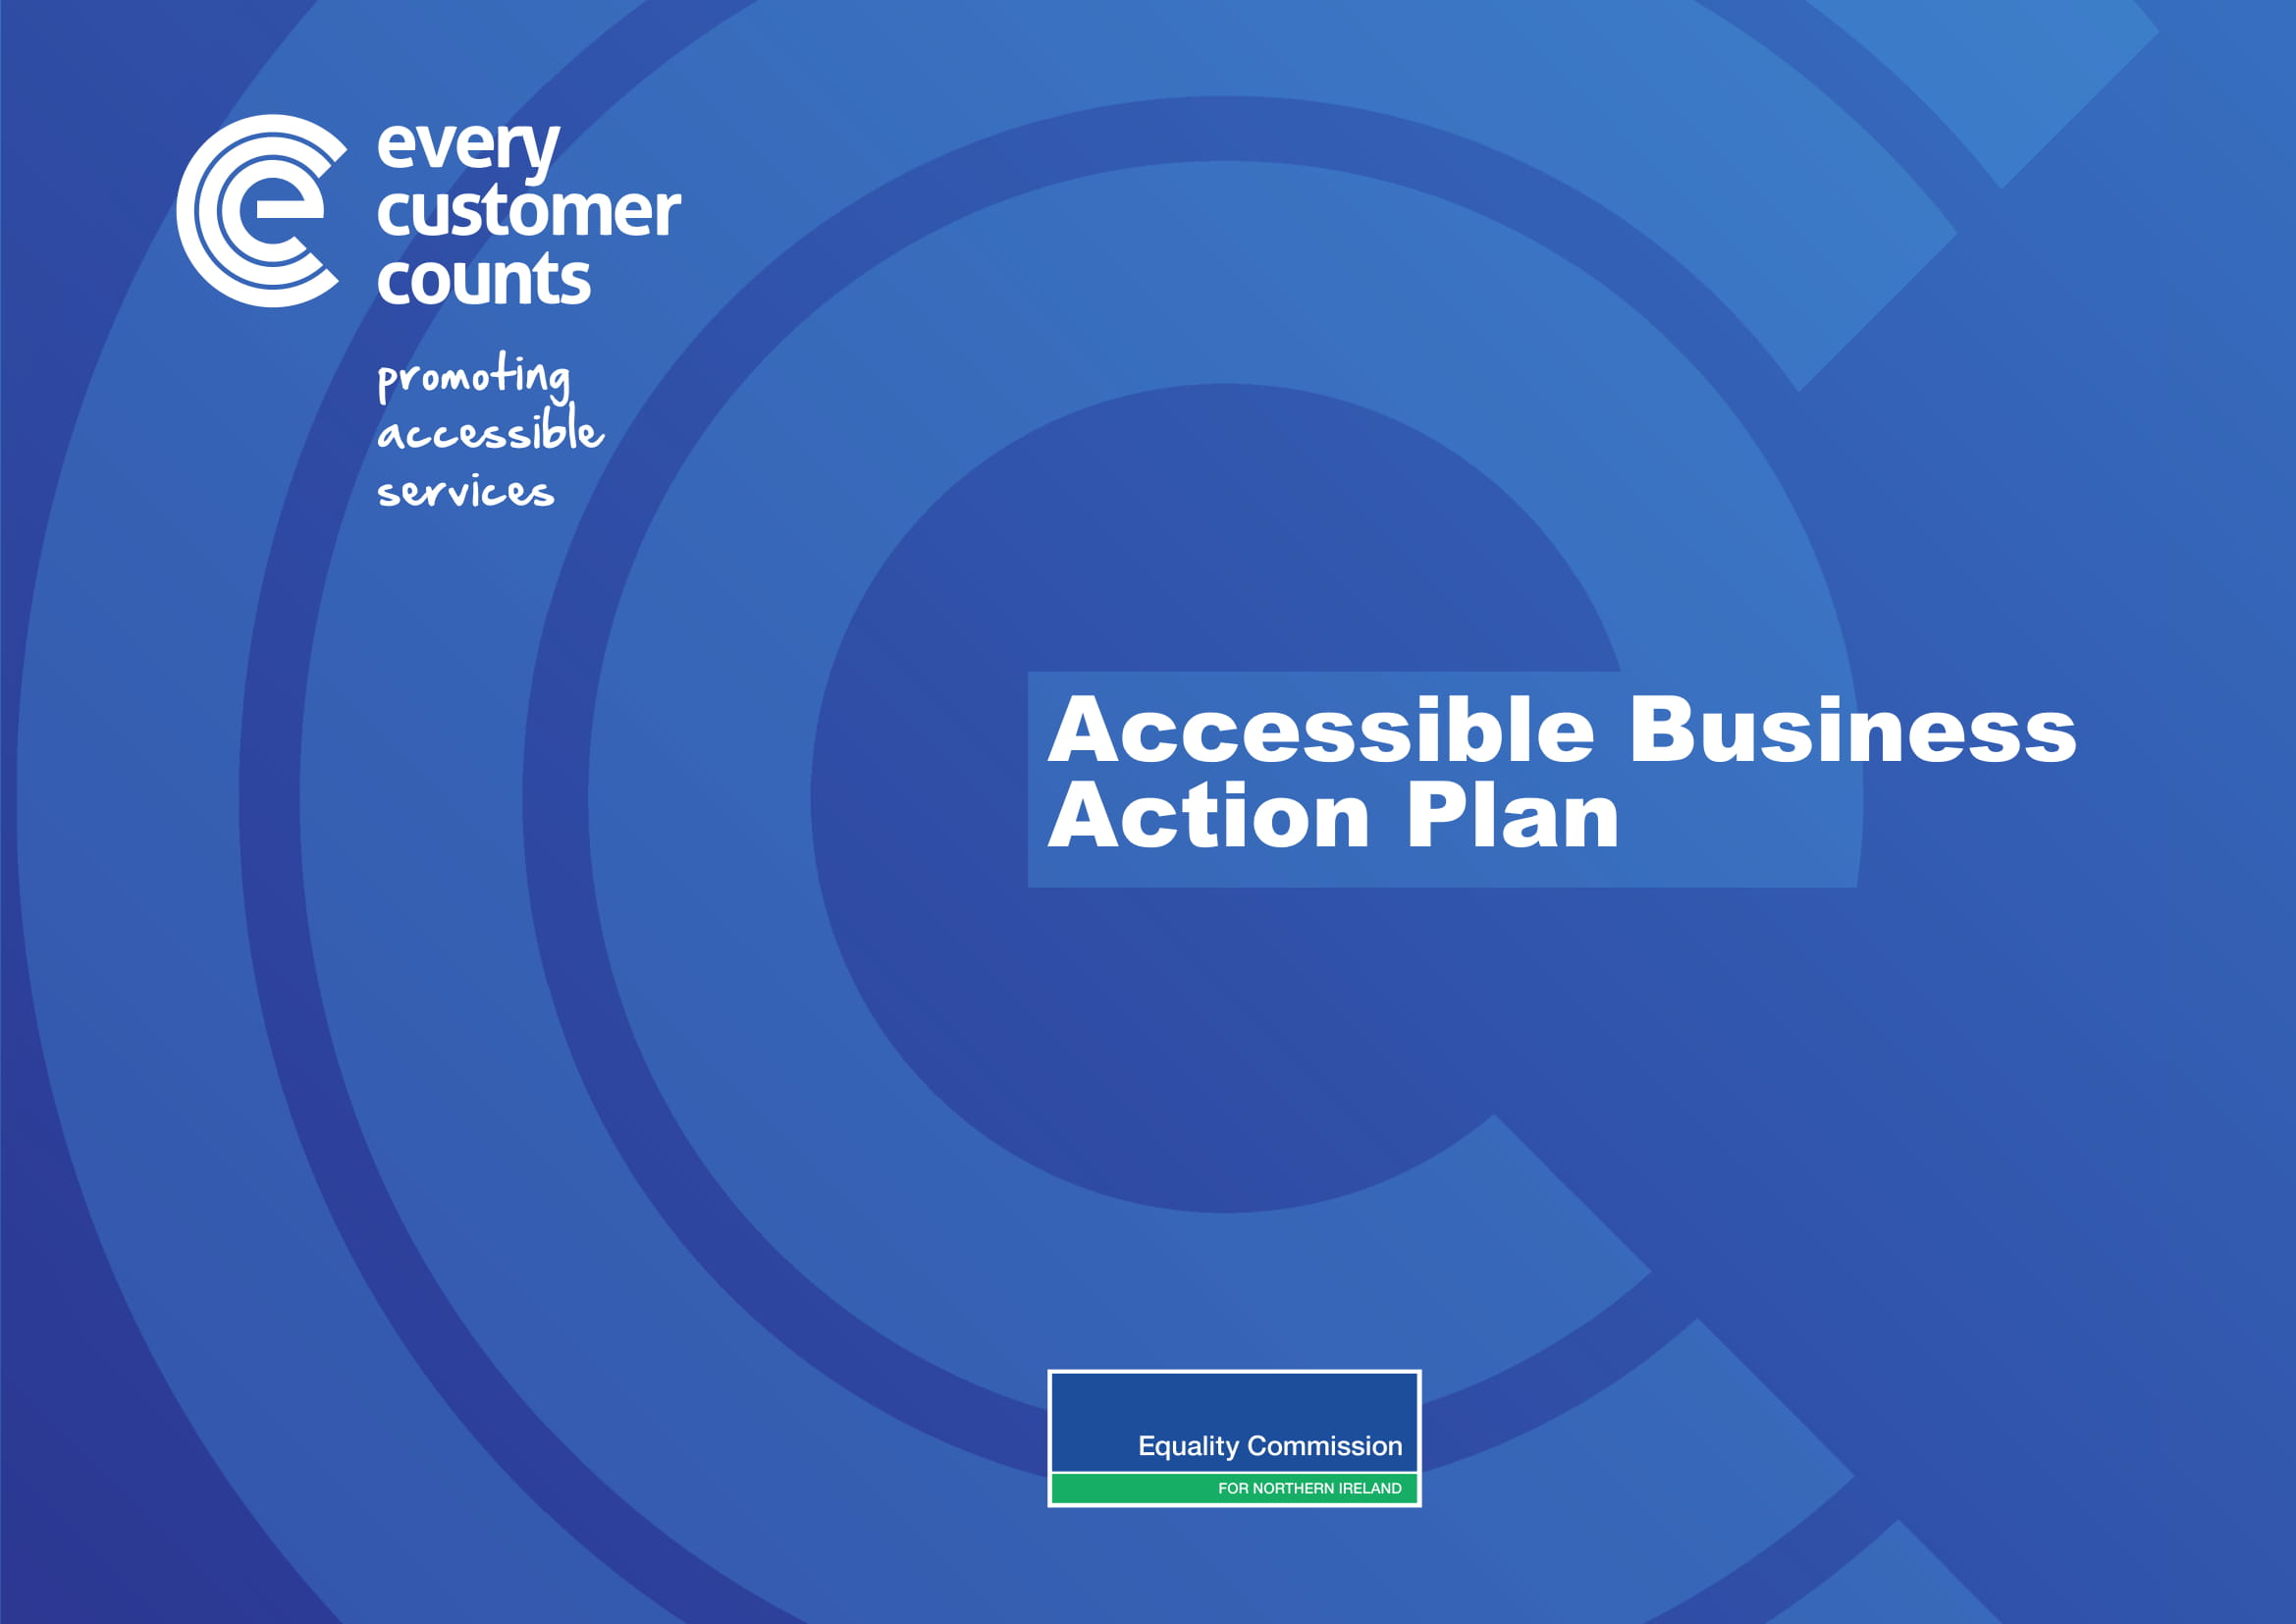 accessible business action plan example 1